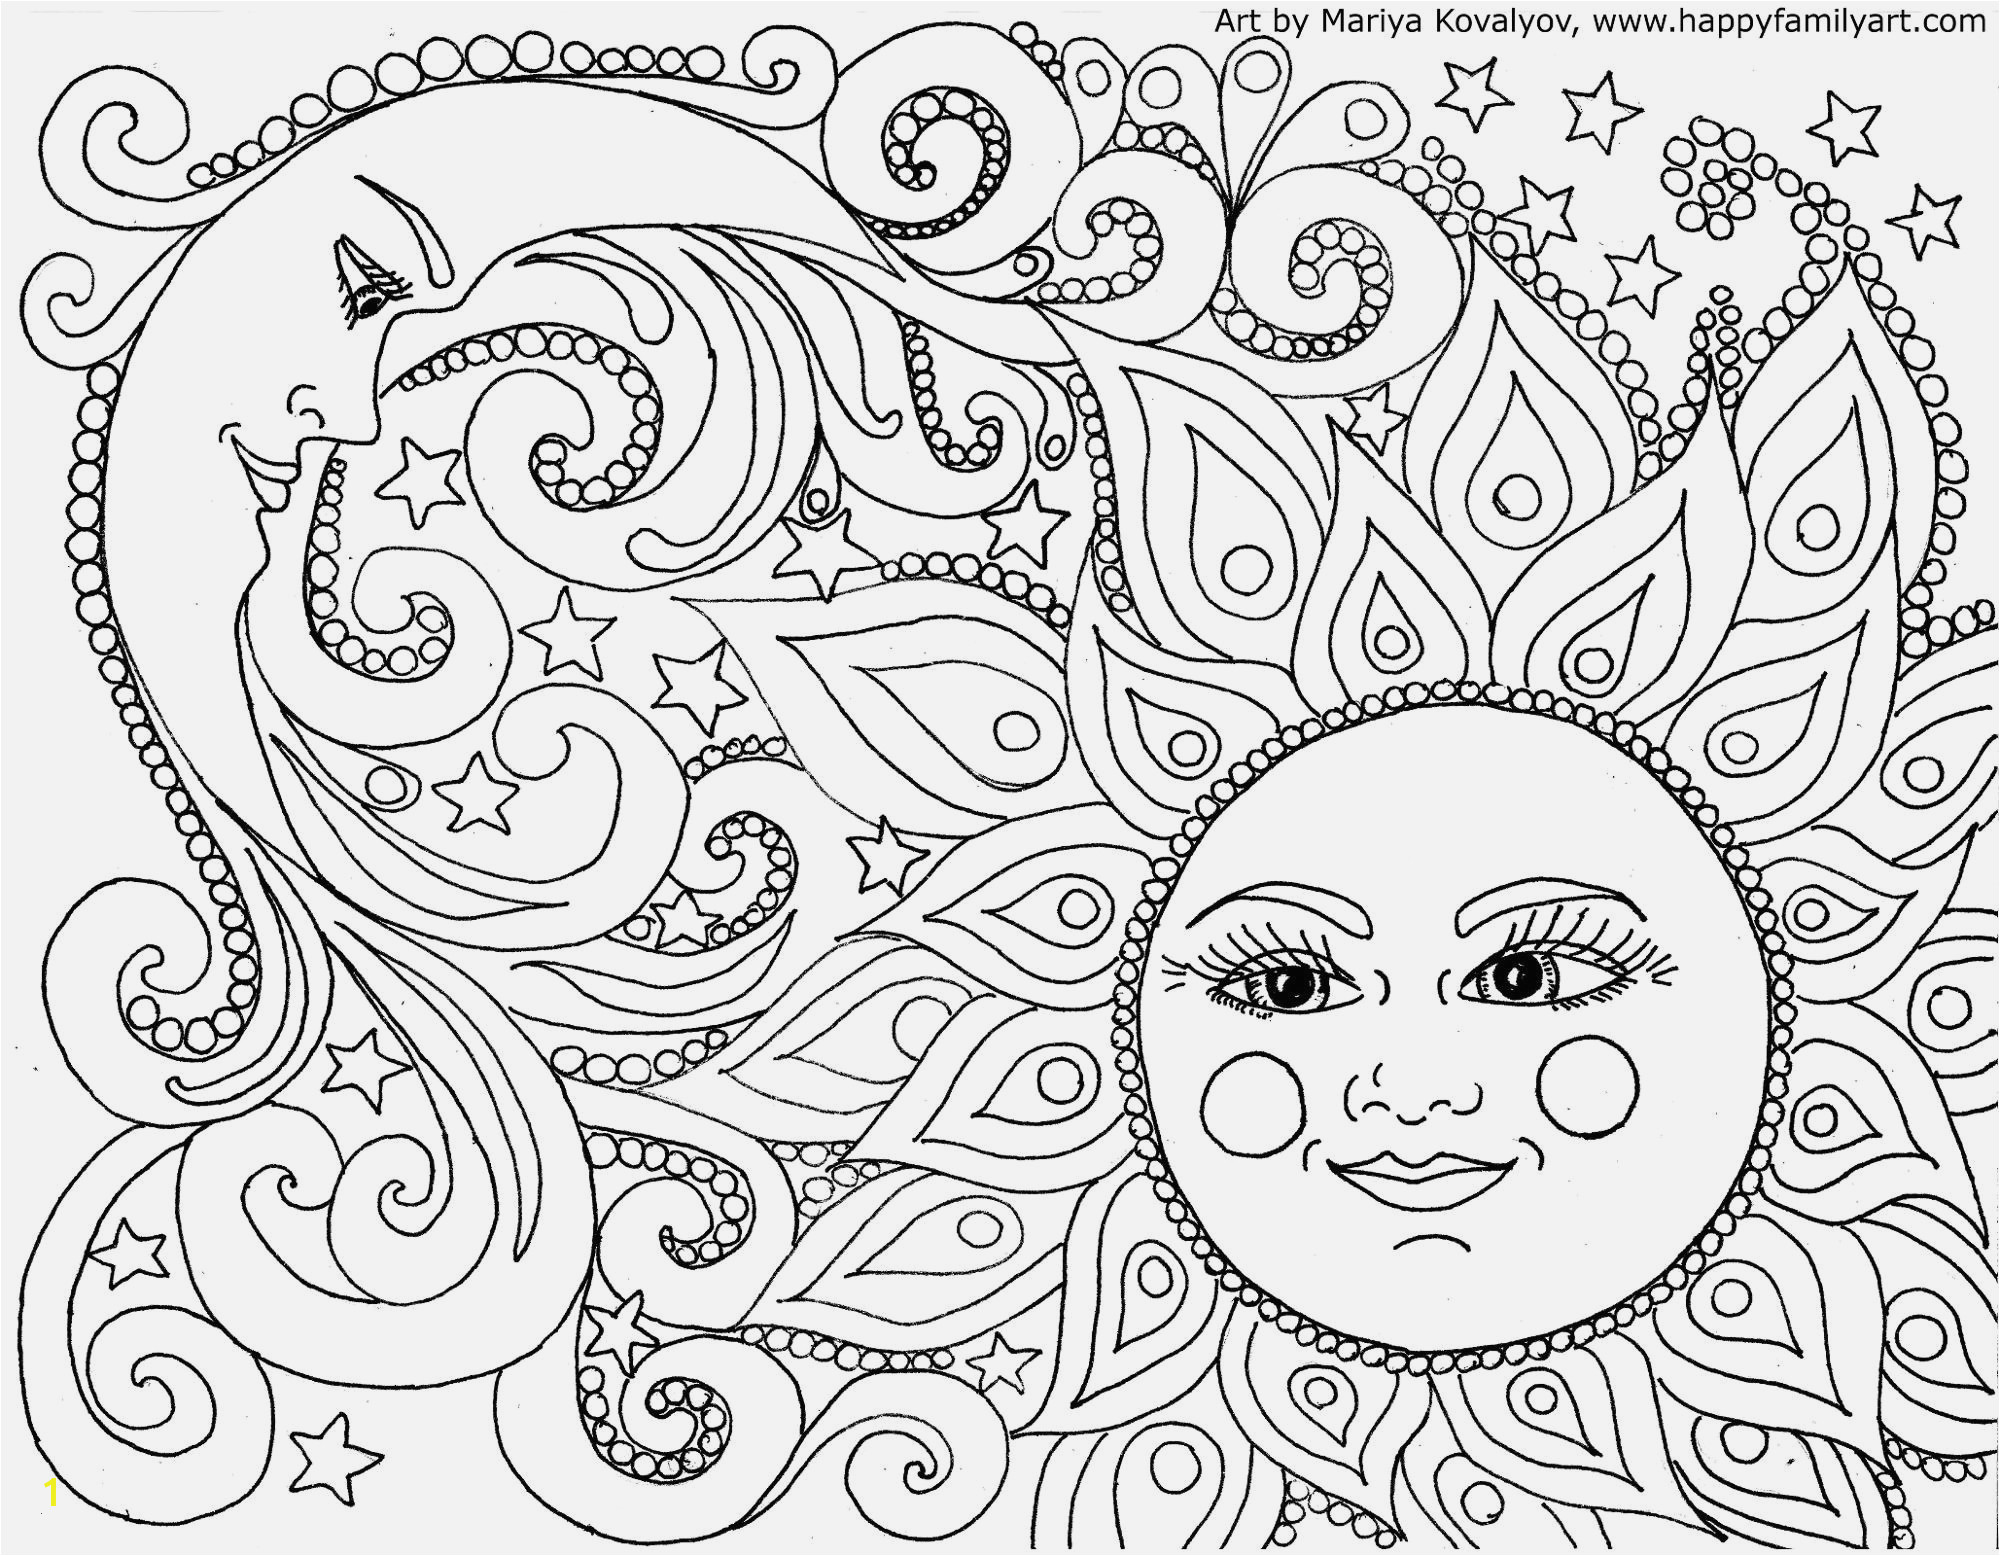 Easy Coloring Pages for Adults to Print Funny Coloring Pages for Adults Easy and Fun Witch Coloring Page